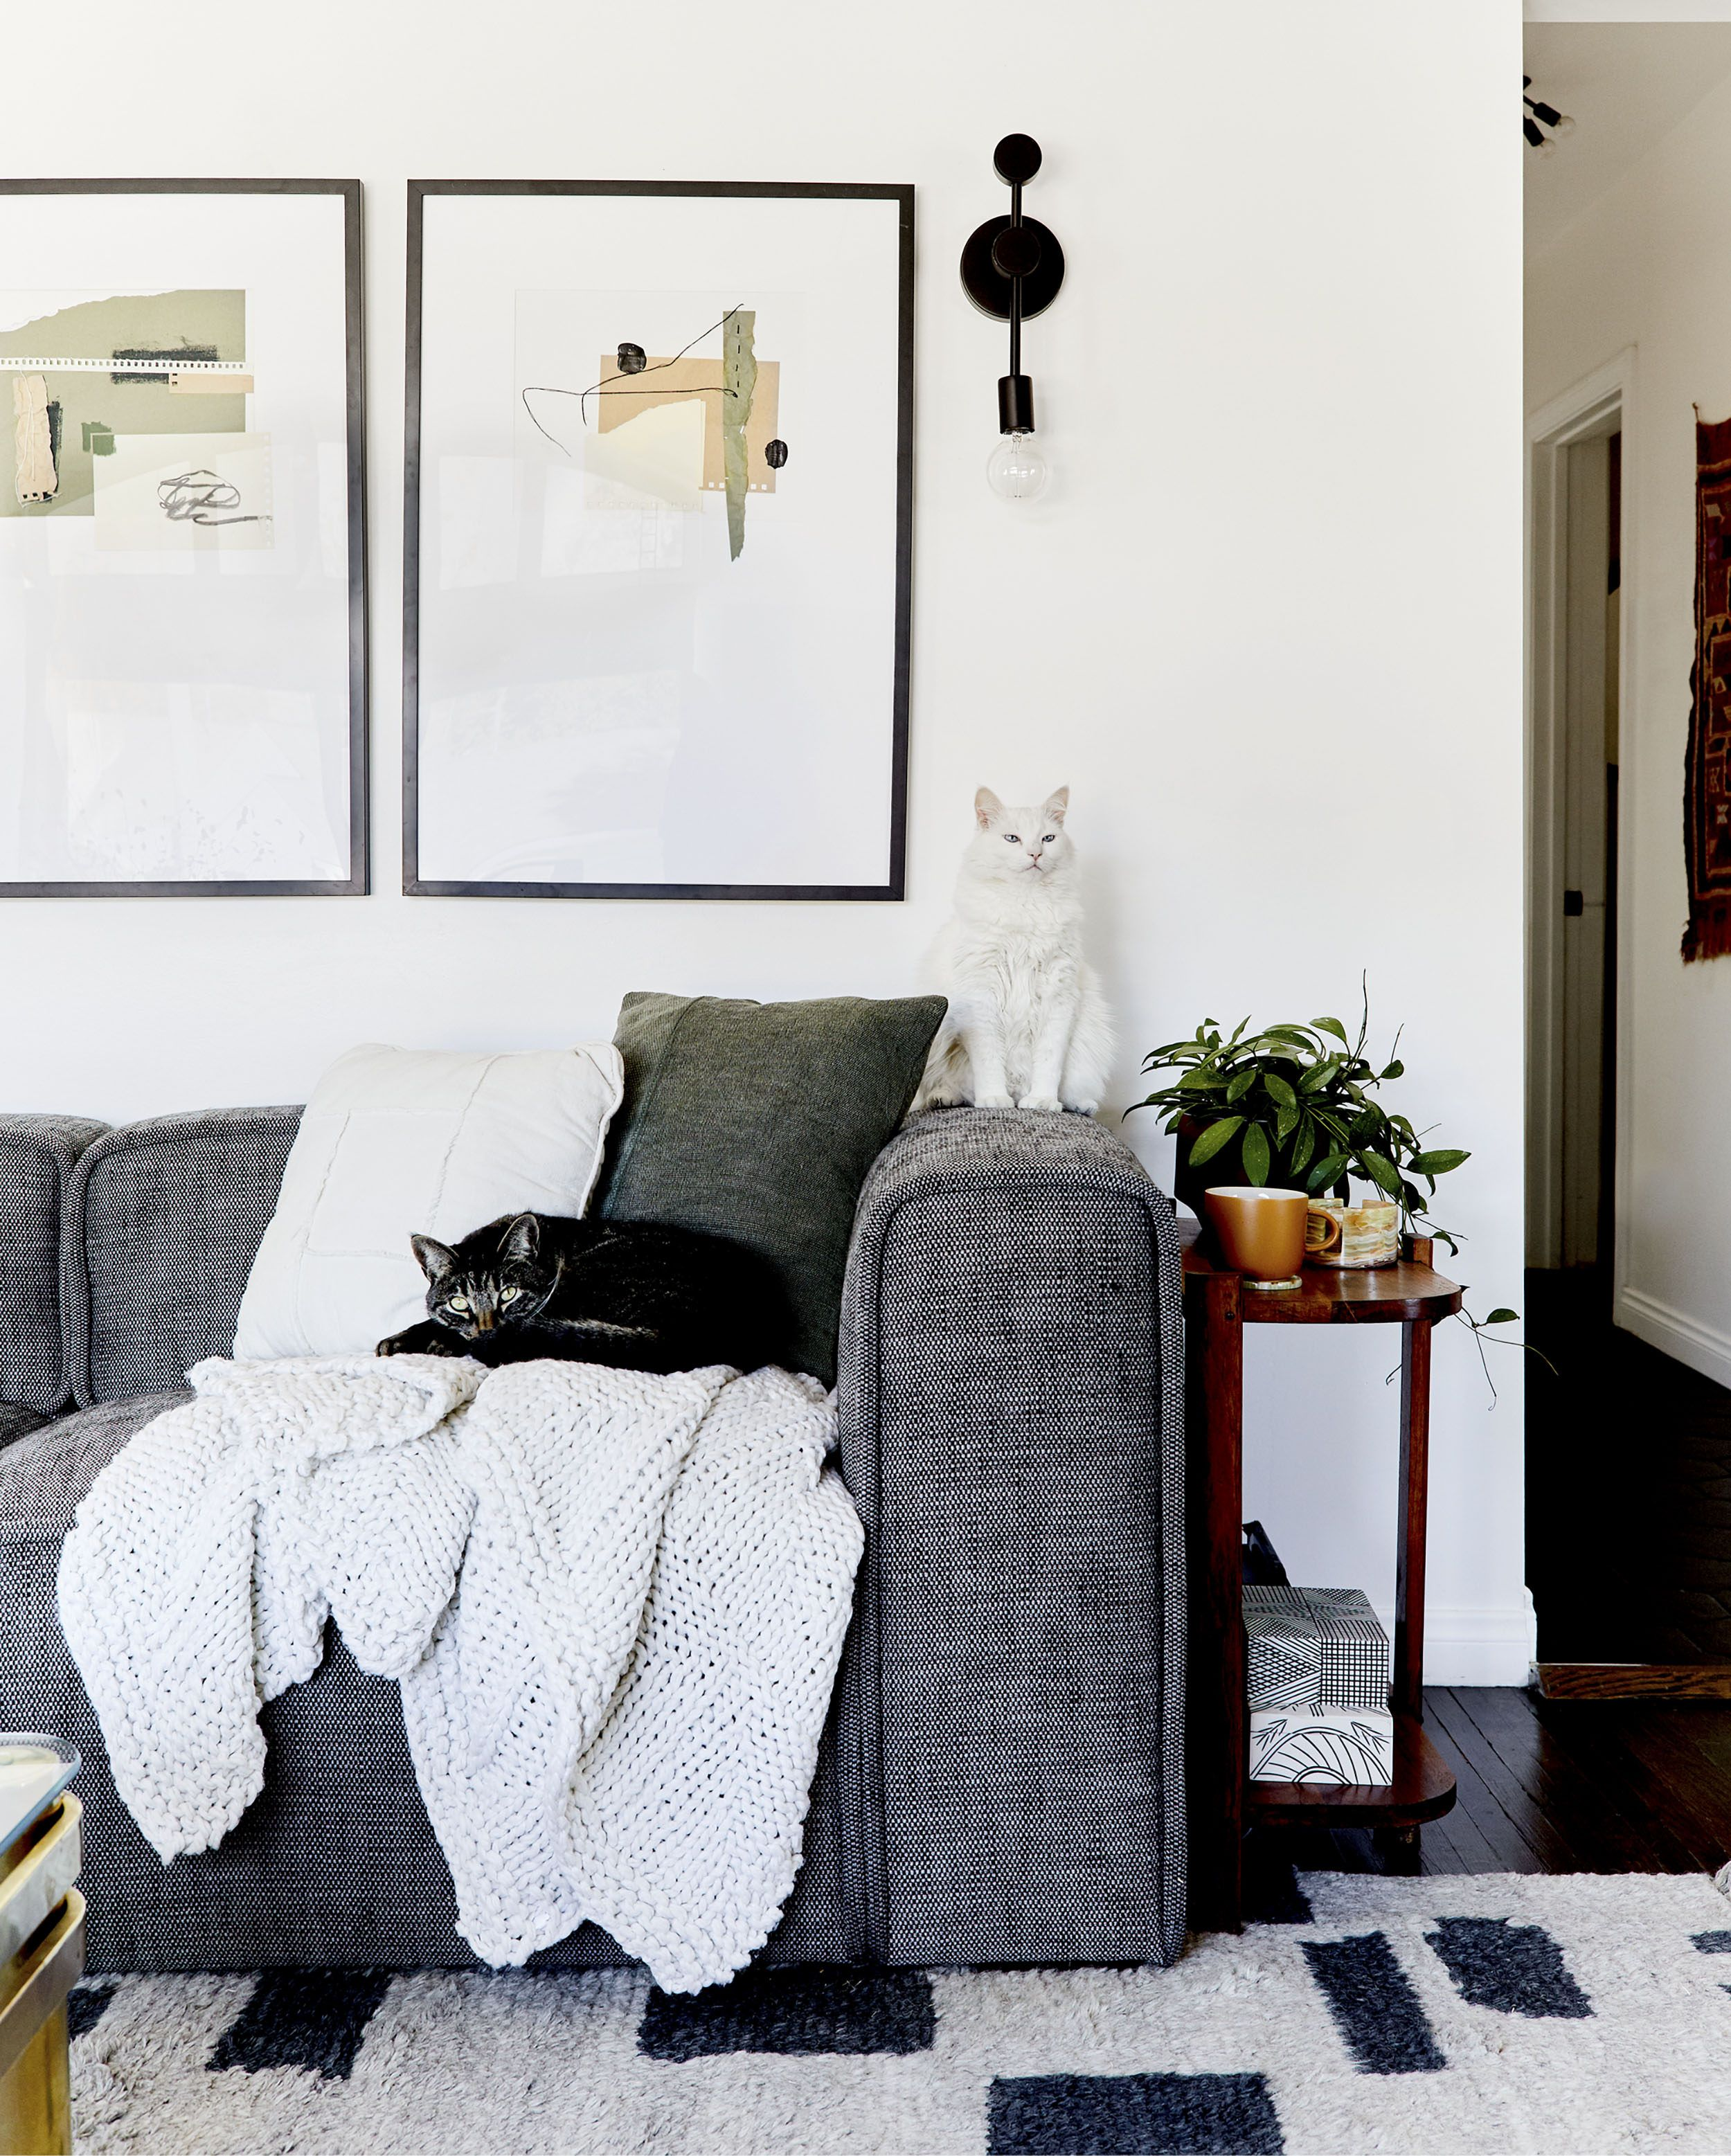 New Moto Reveal Emily Bowser S Refreshed For Function Small Living Room Makeover Living Room Makeover Room Makeover Emily Henderson Living Room #small #living #room #makeover